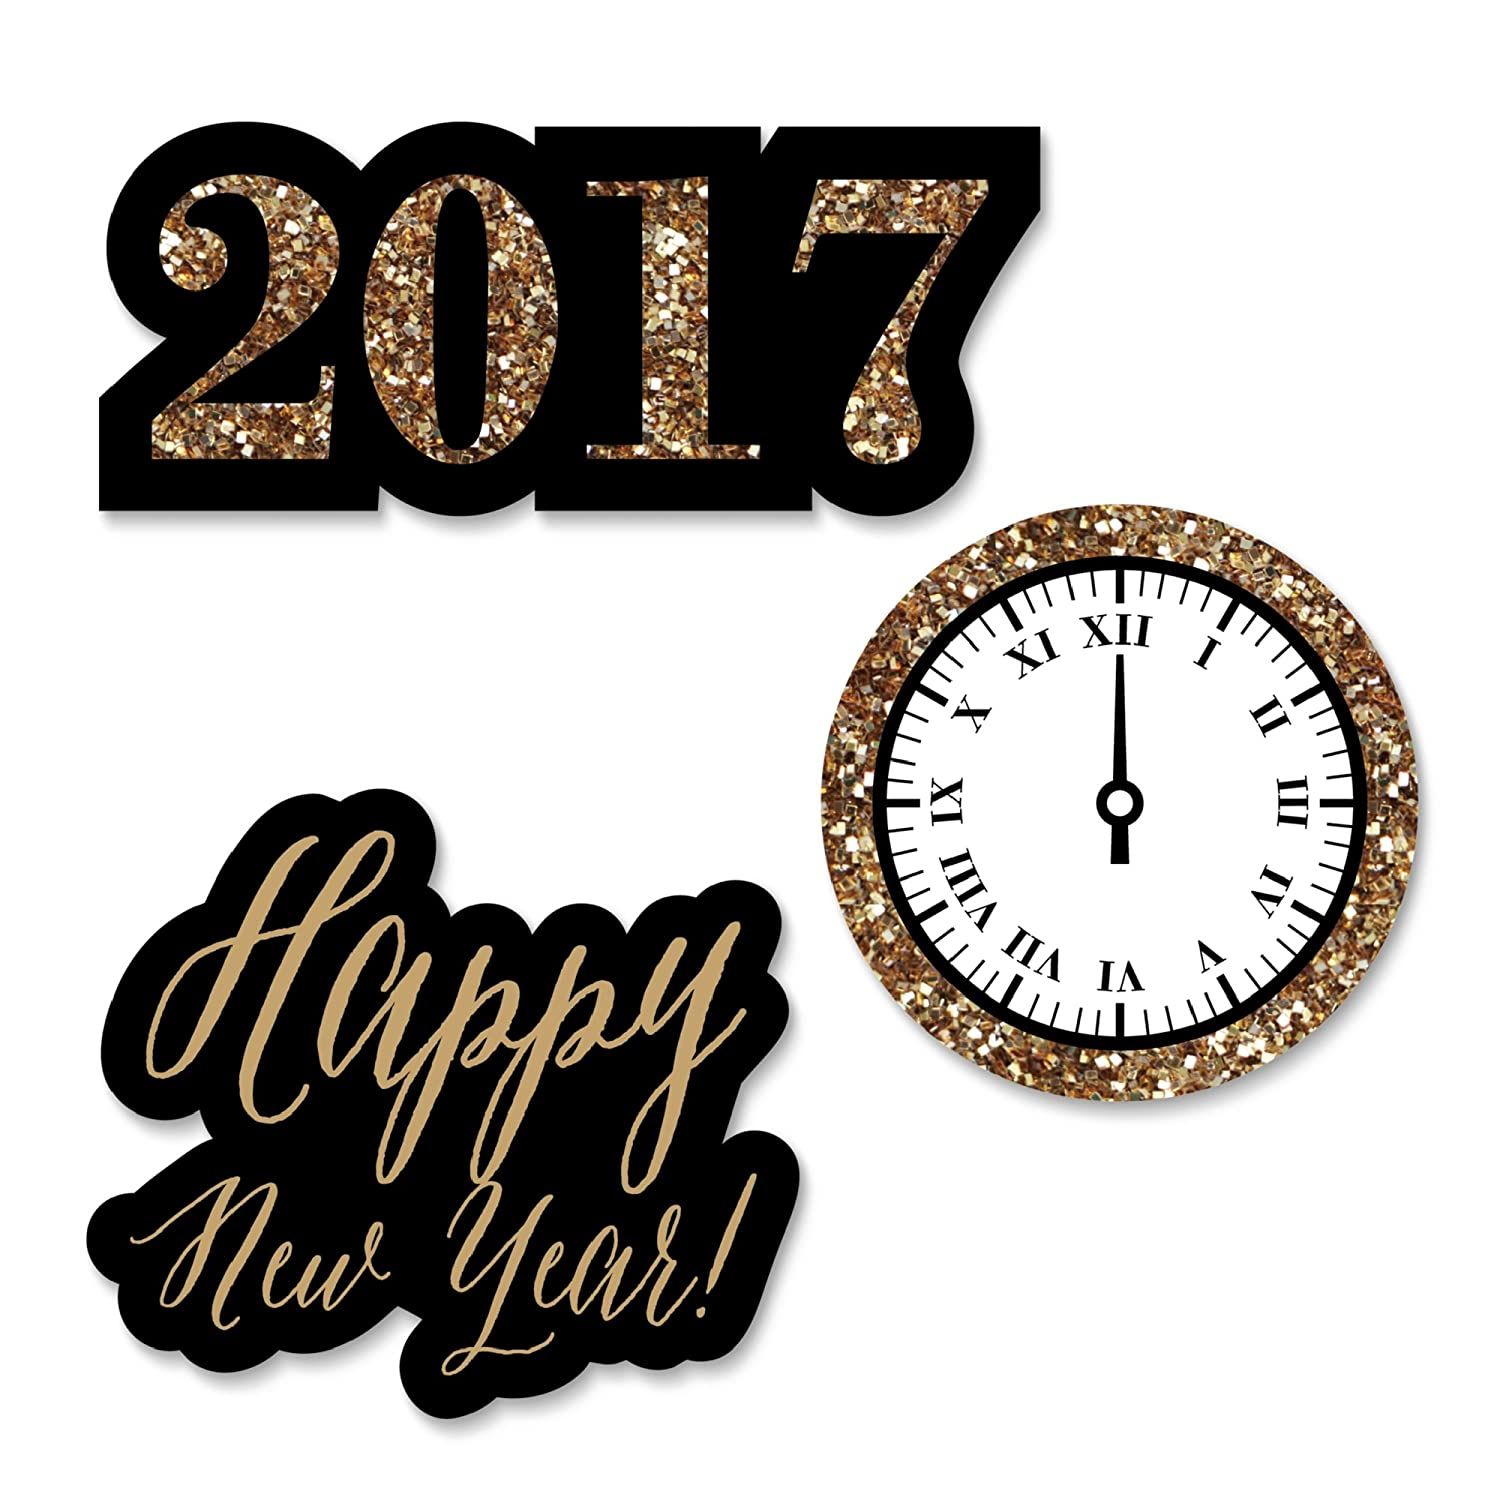 New Year's Eve - Gold - DIY Shaped New Years Eve Party Cut-Outs